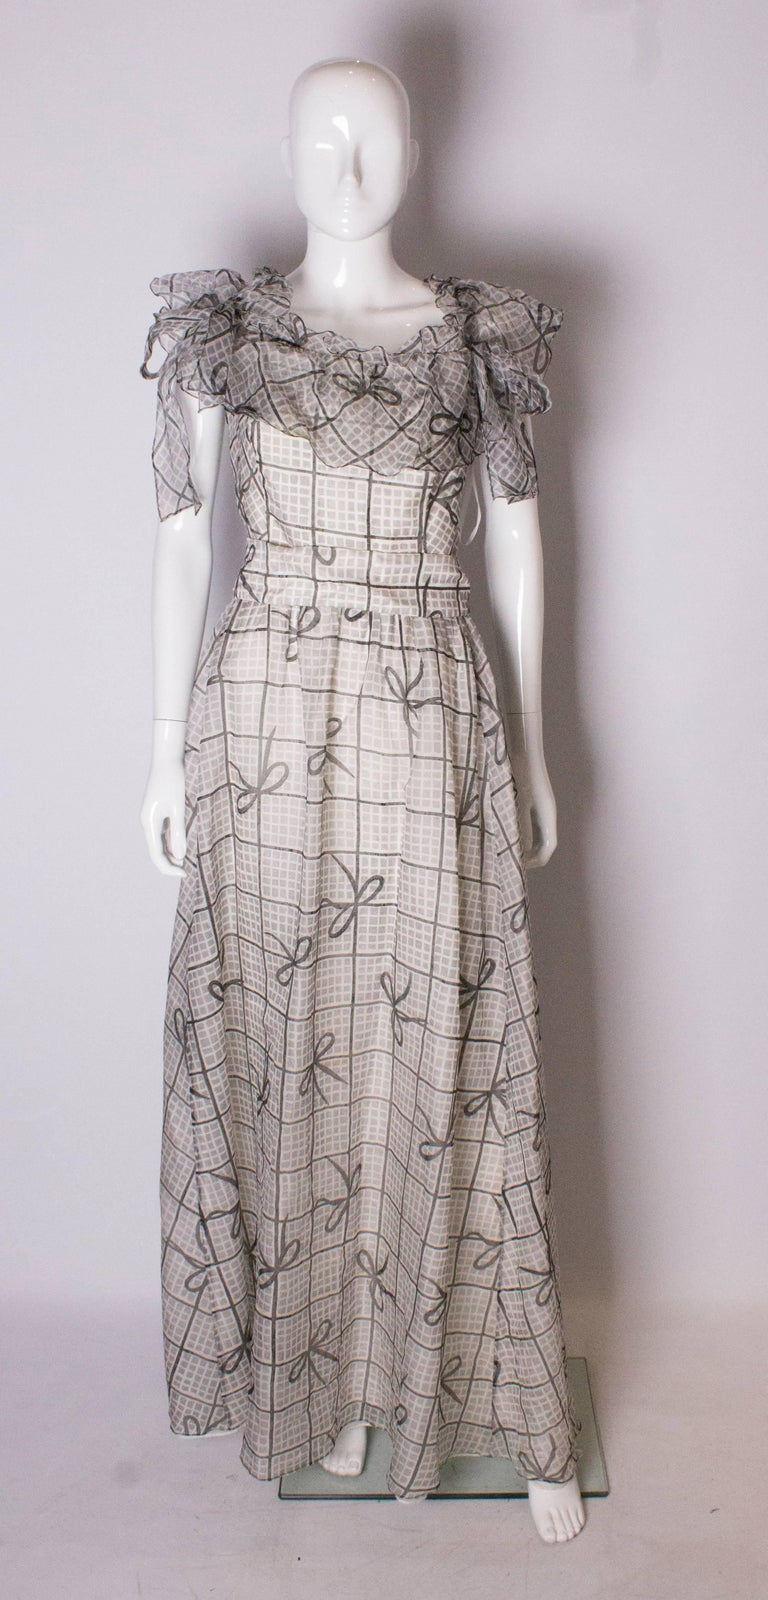 A stunning silk gown by Gina Fratini. The dress is  made of silk in a black, grey and white print, with  two layers of lining, one in organza and the other in lining fabric. The dress has boning in the bust area, and frills at the neckline with a